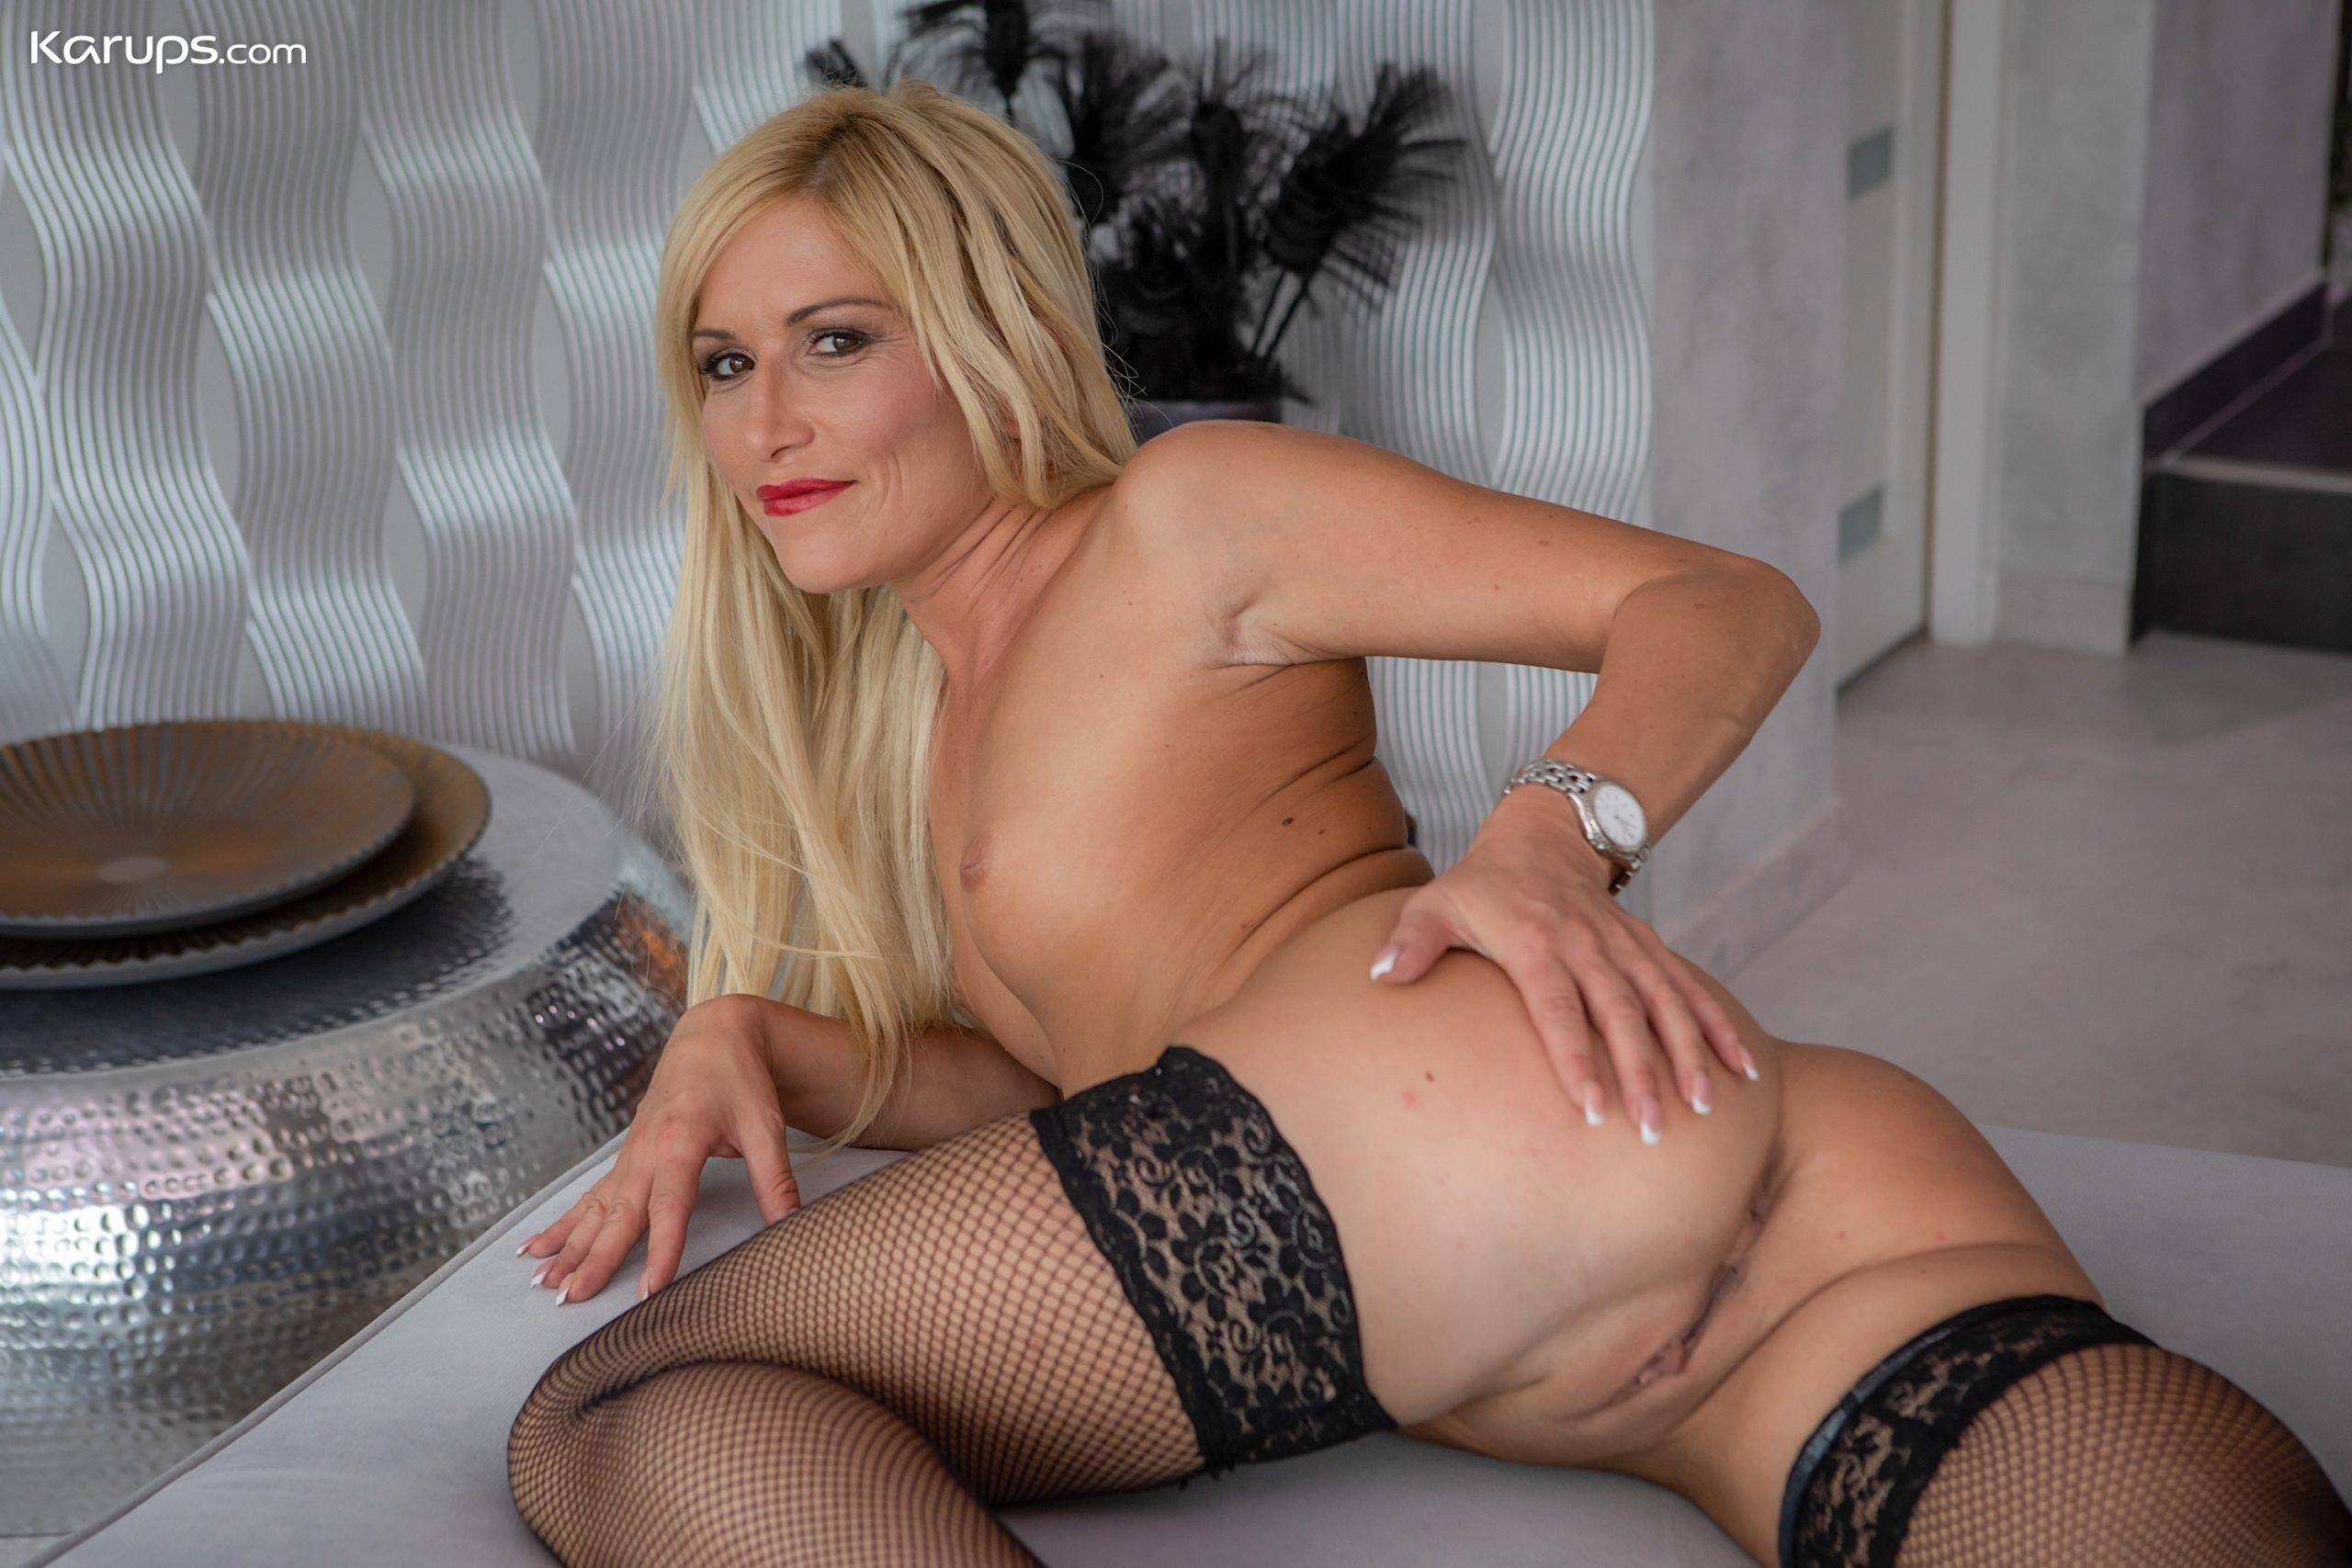 Stunning blonde MILF Black Blondie naked in only black stockings at Karupsow